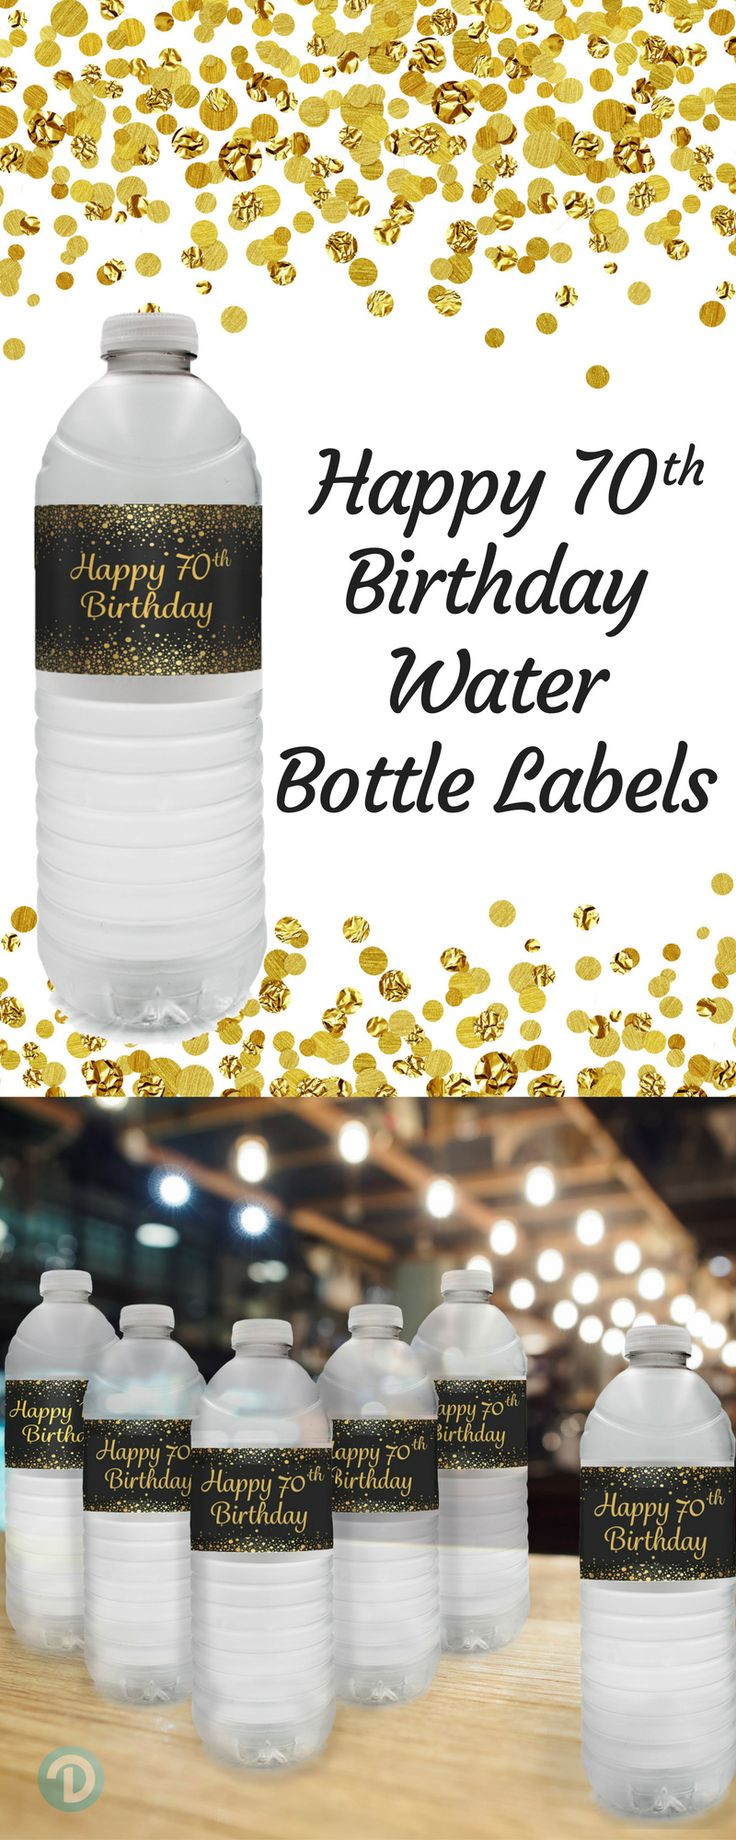 Best ideas about 70th Birthday Celebration Ideas . Save or Pin 72 best 70th Birthday Party Ideas images on Pinterest Now.